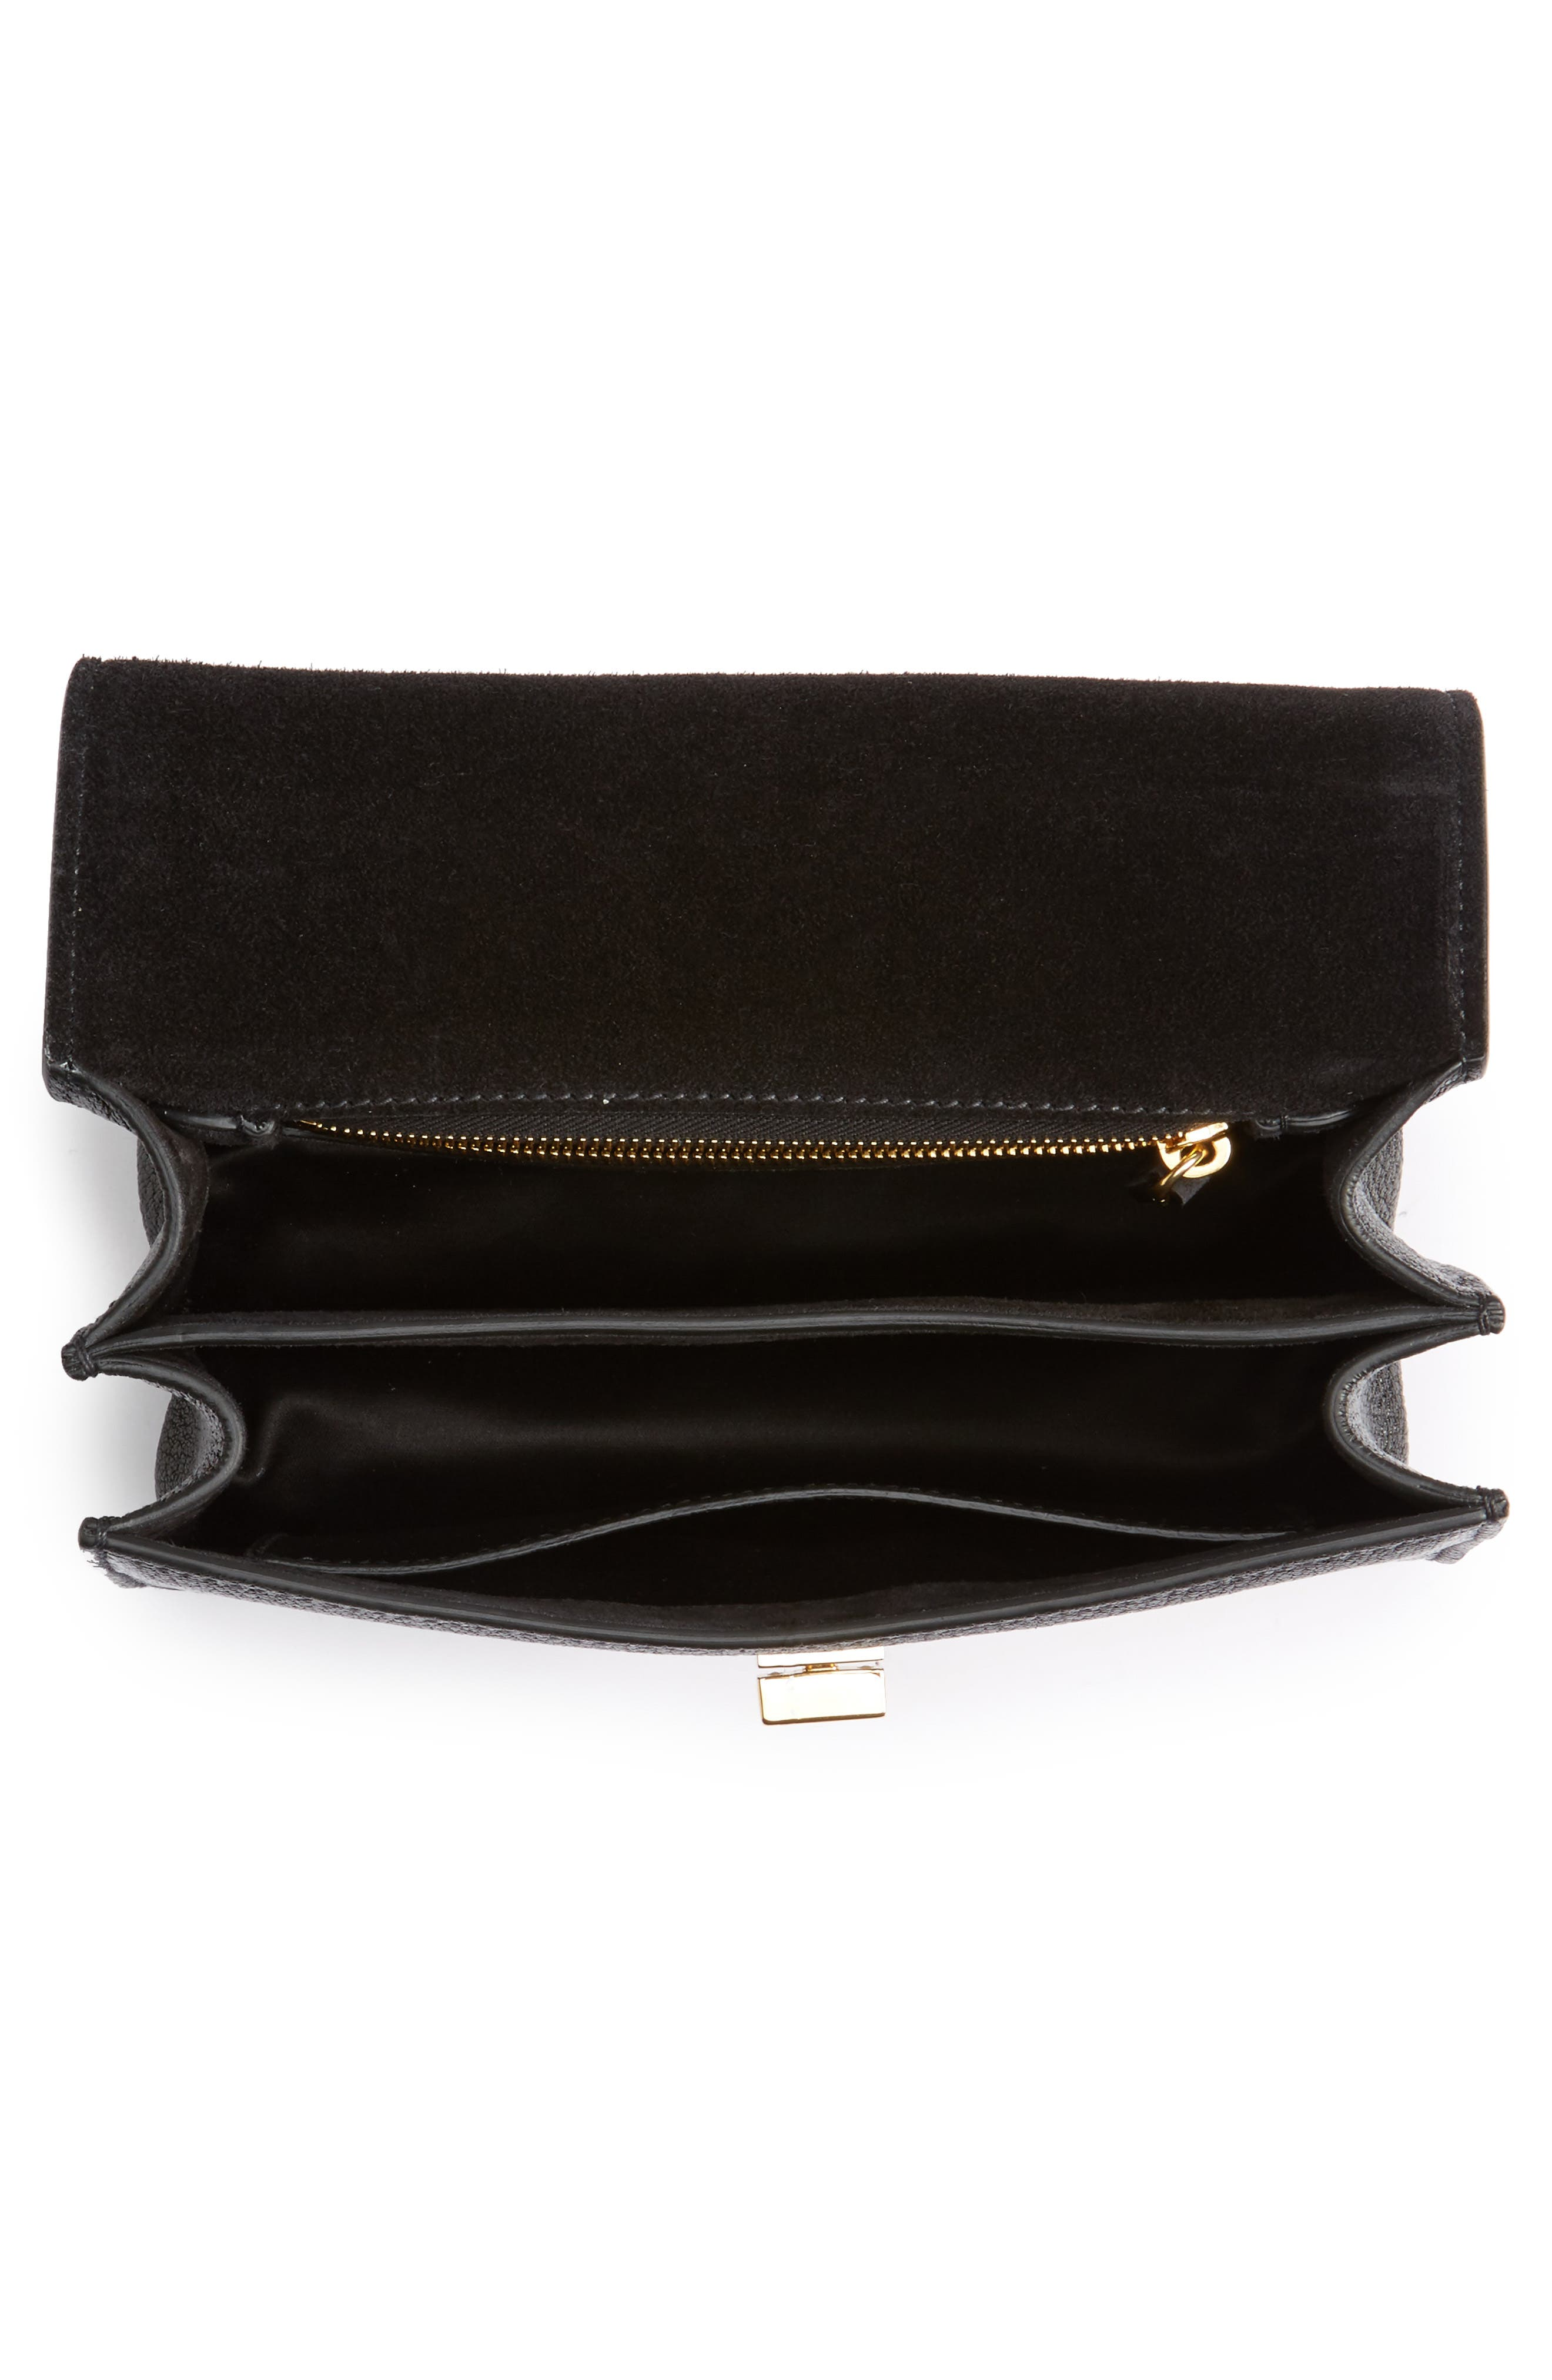 Madras Leather Crossbody Bag,                             Alternate thumbnail 5, color,                             Nero